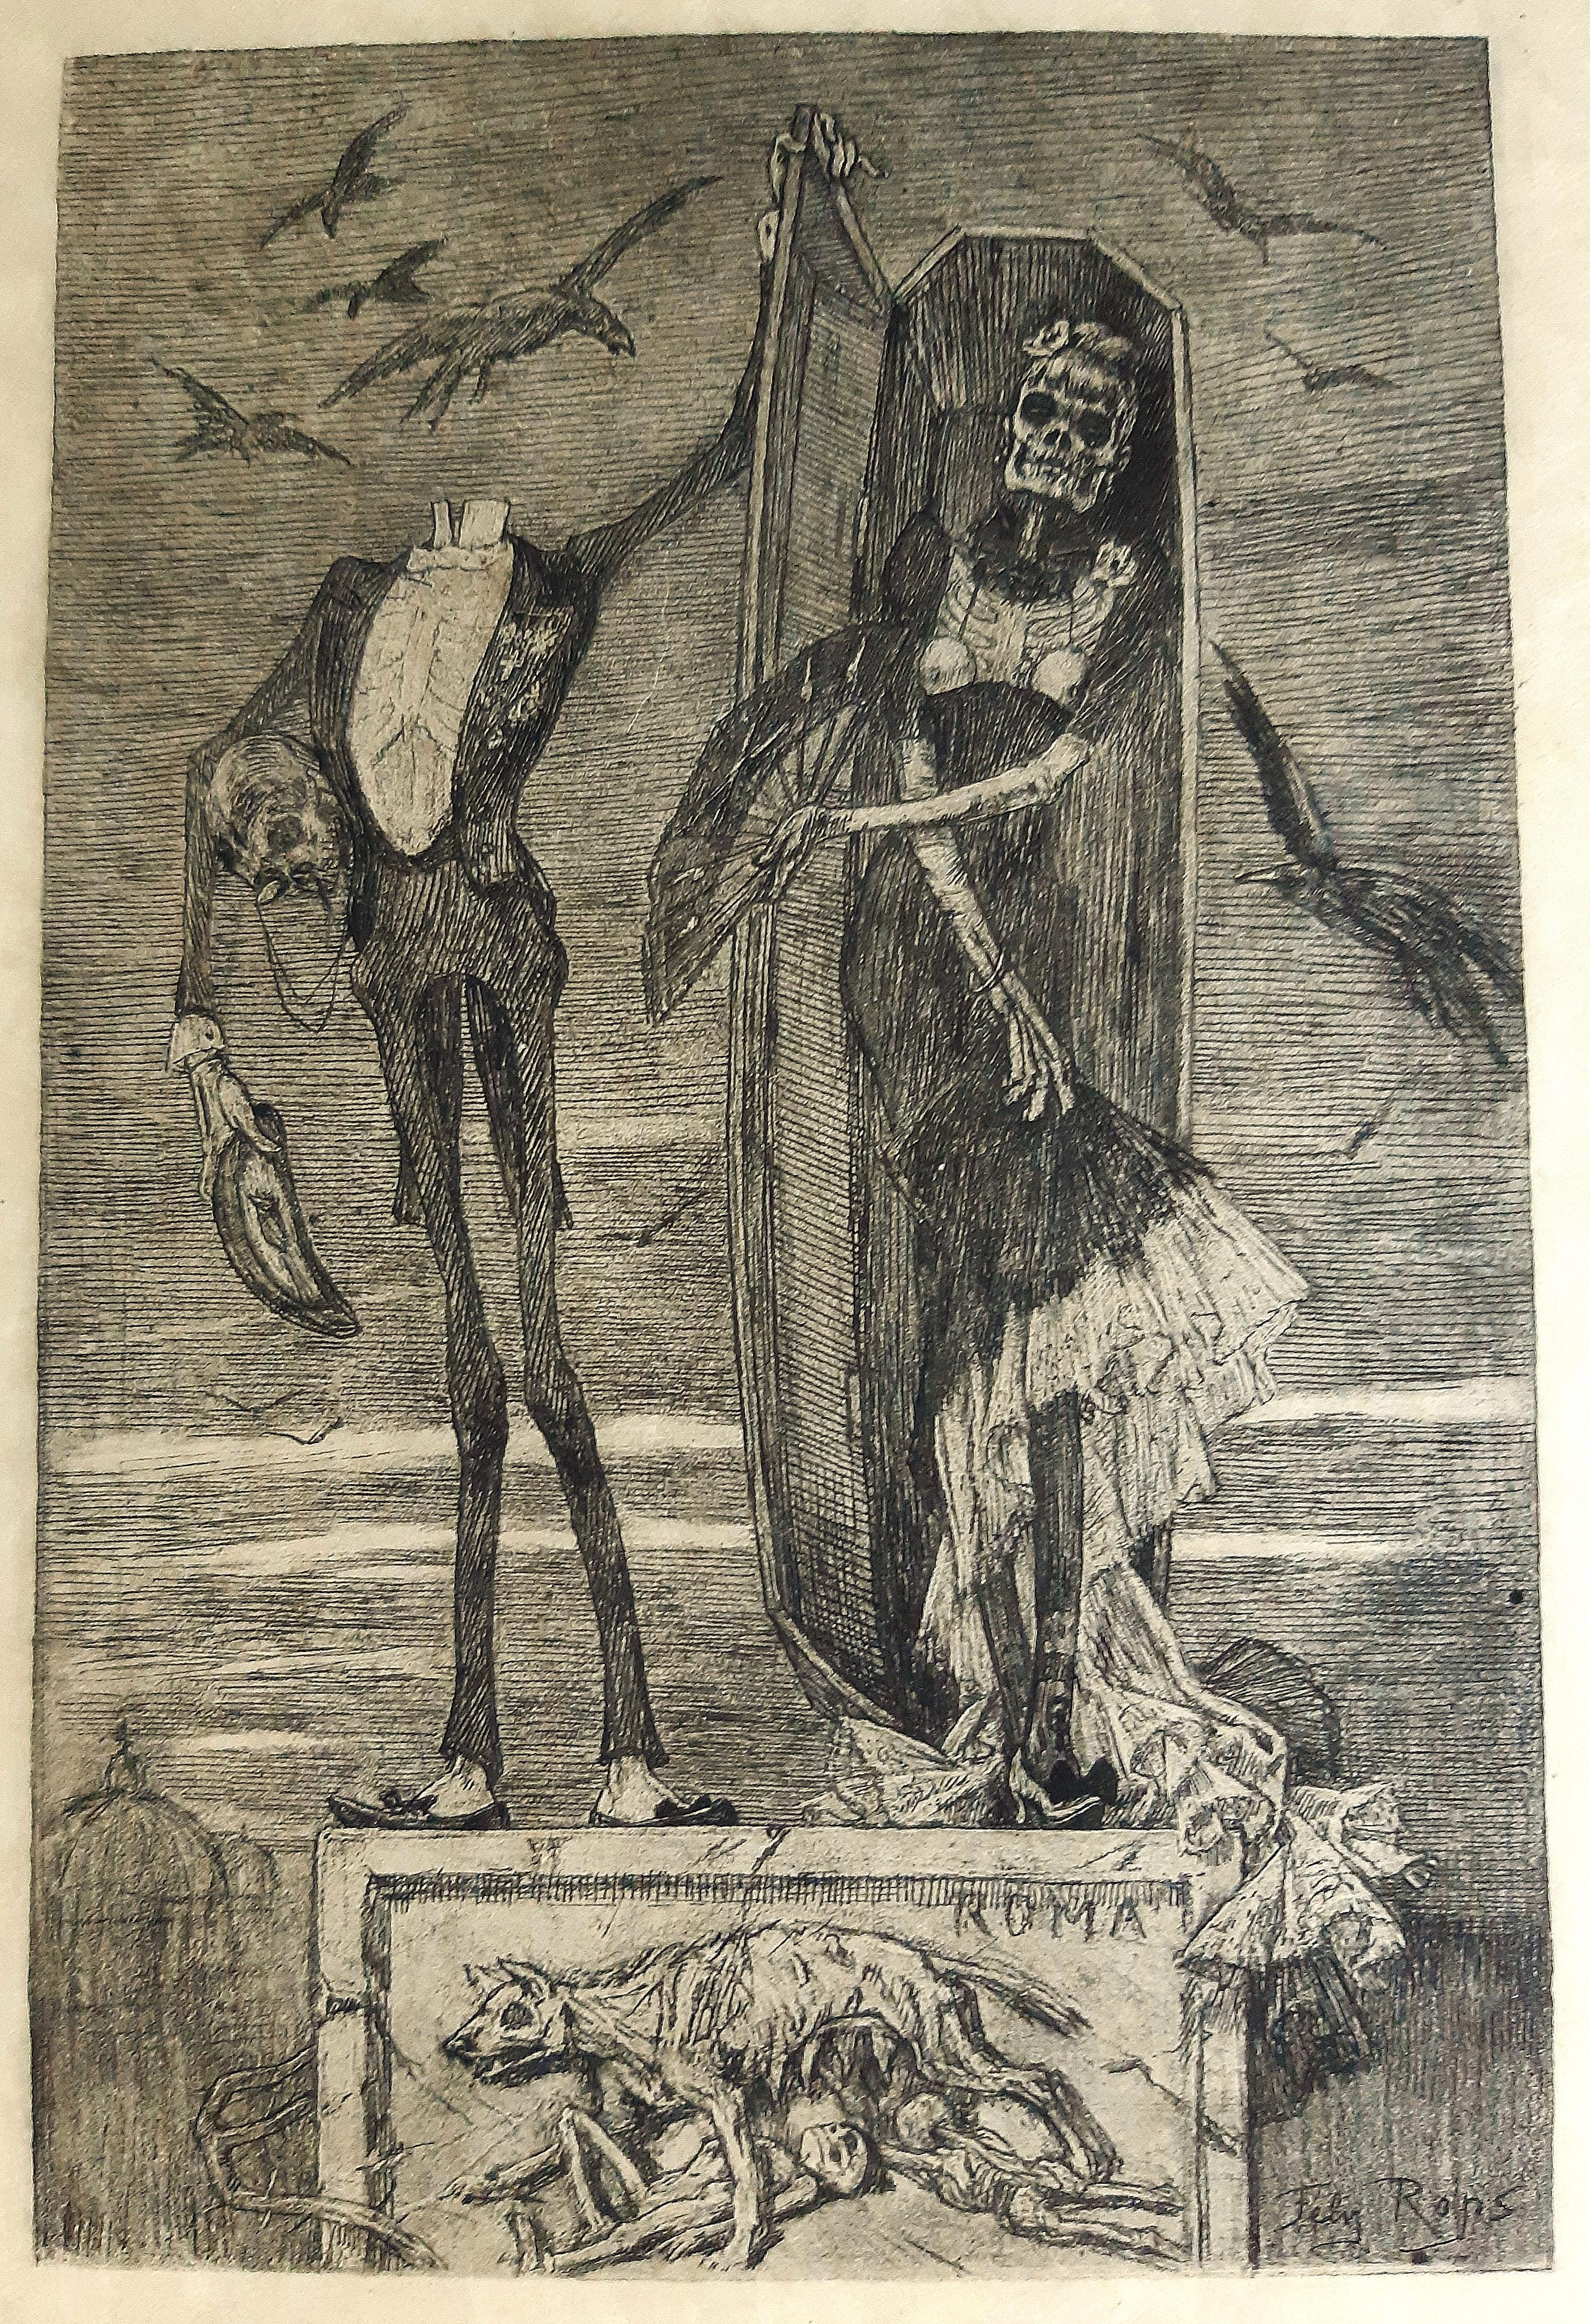 Le Vice Supreme  - Original Etching by Félicien Rops - 1883